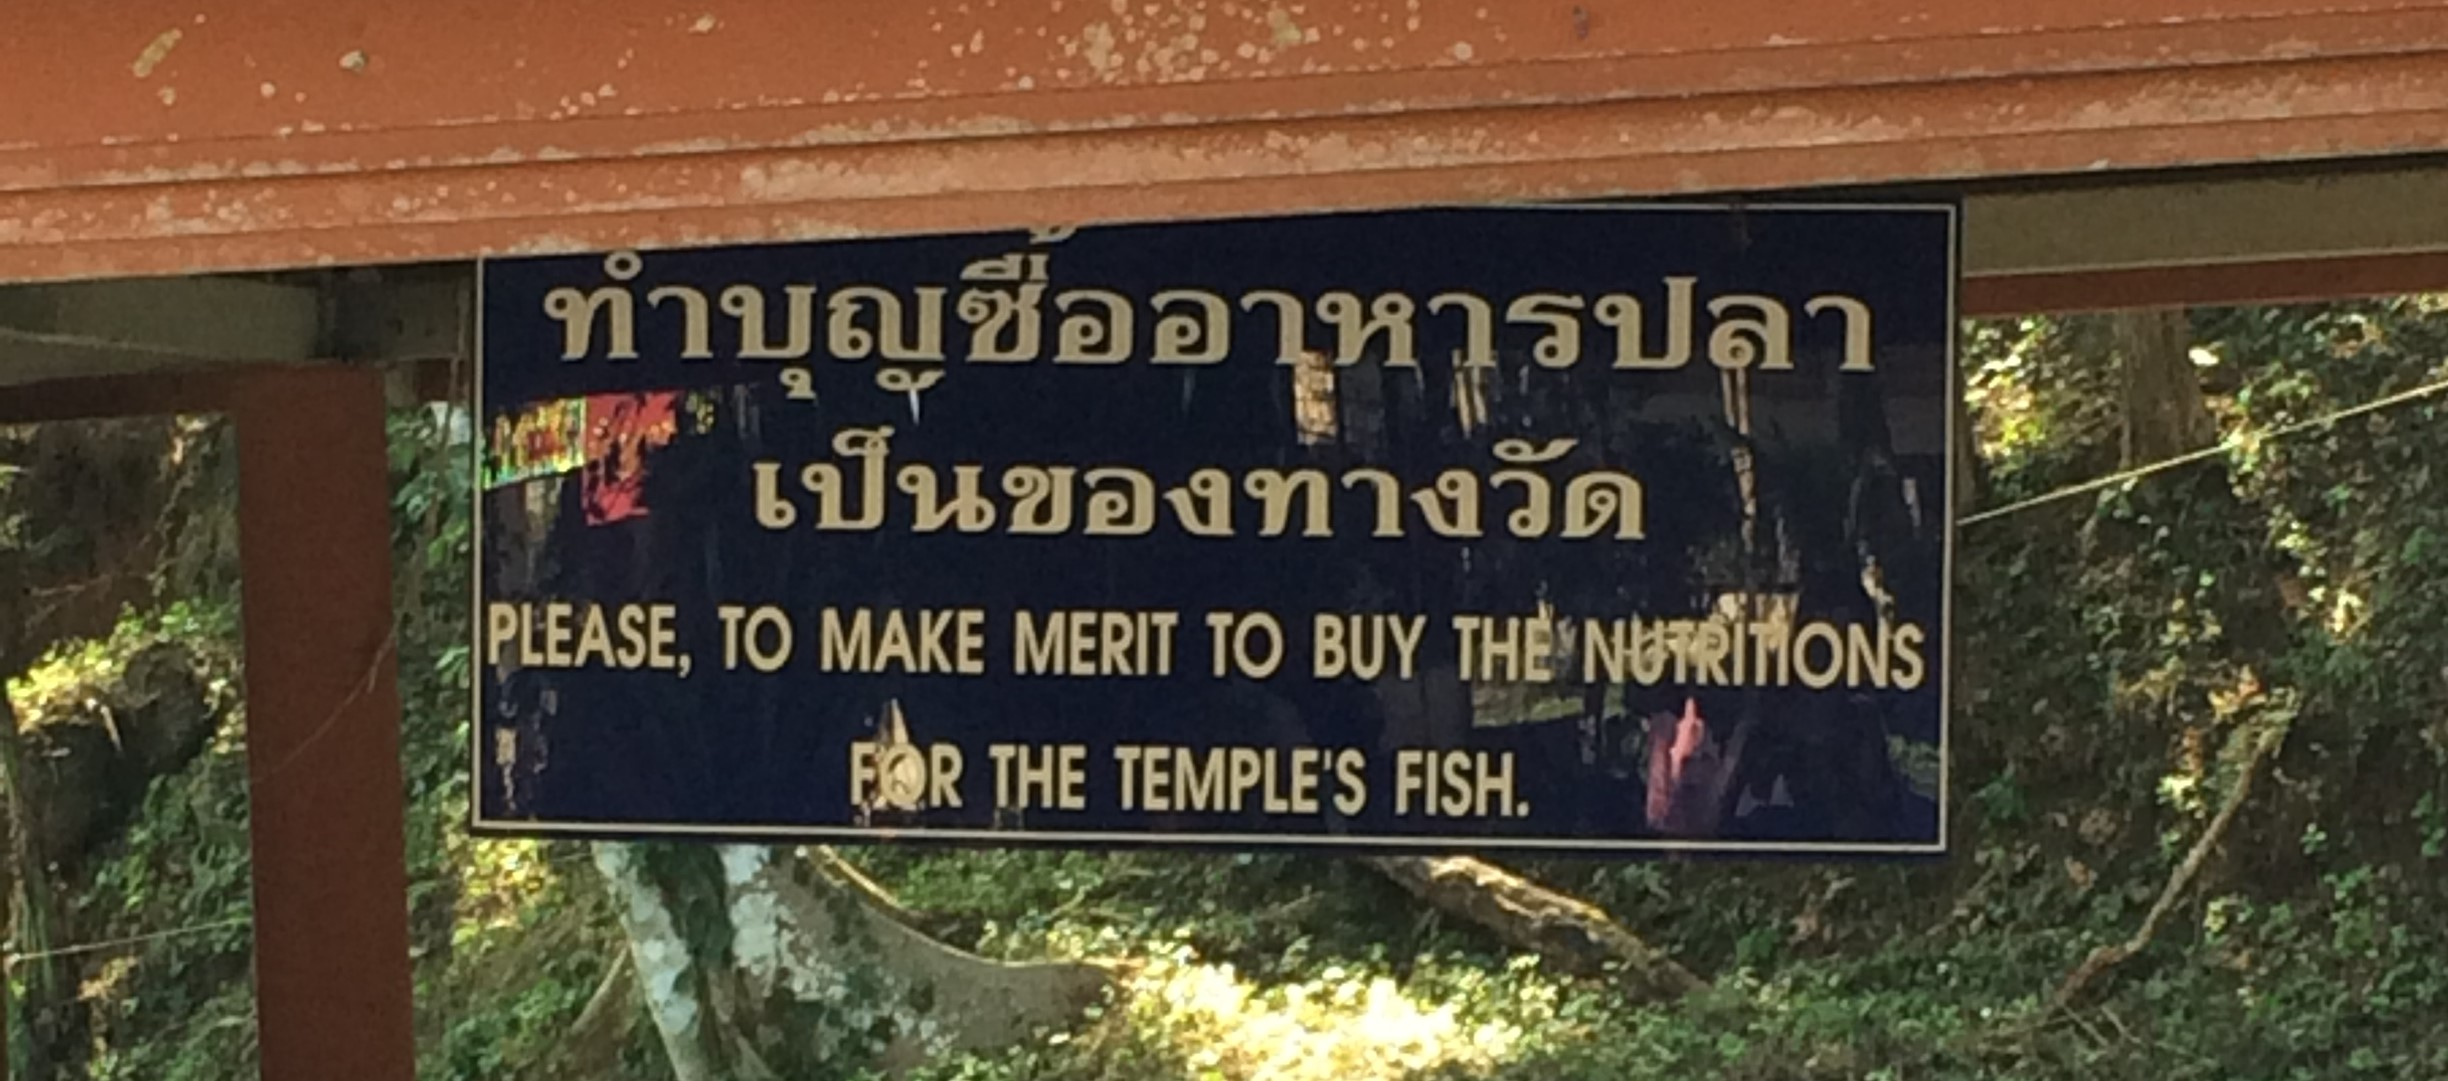 This sign was hanging by a coy pond in Chiang Dao, Thailand. I thought it was well said. In order to buy the nutritions, you first must make merit. If only I knew how to make merit. Chiang Dao, Thailand.